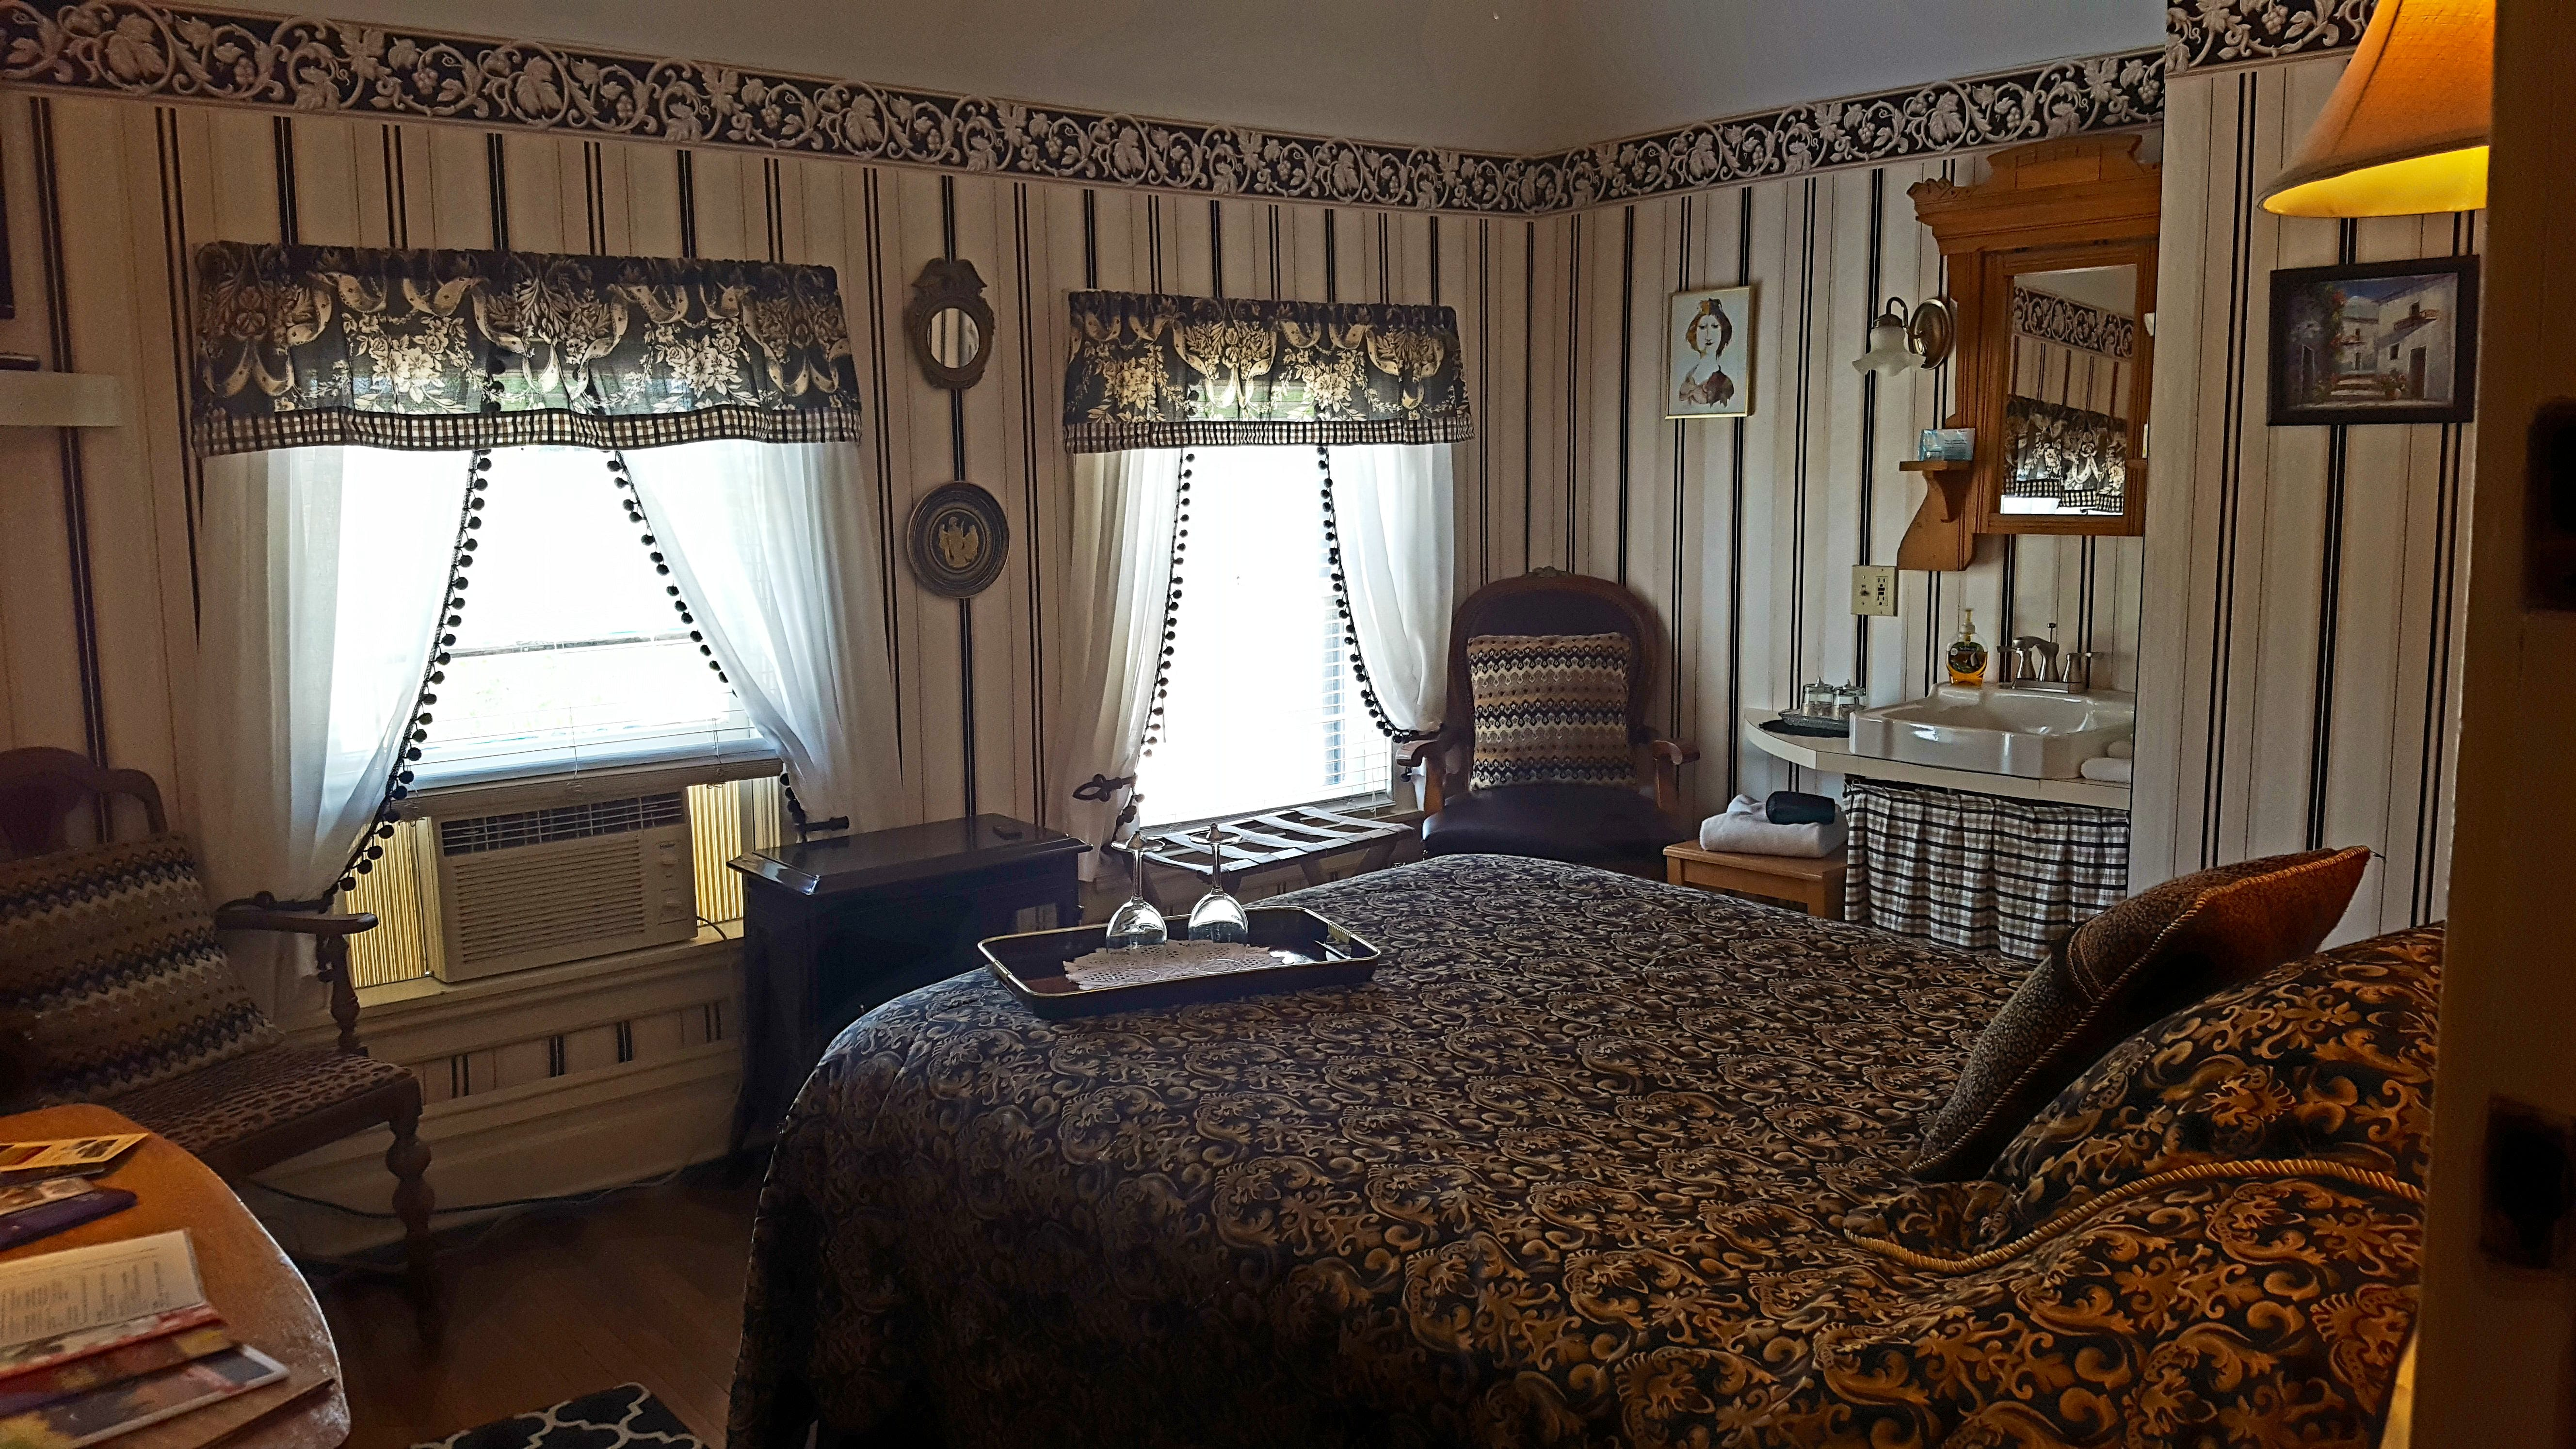 Our Standard Room, also know as The Mediterranean Room is a comfortable room